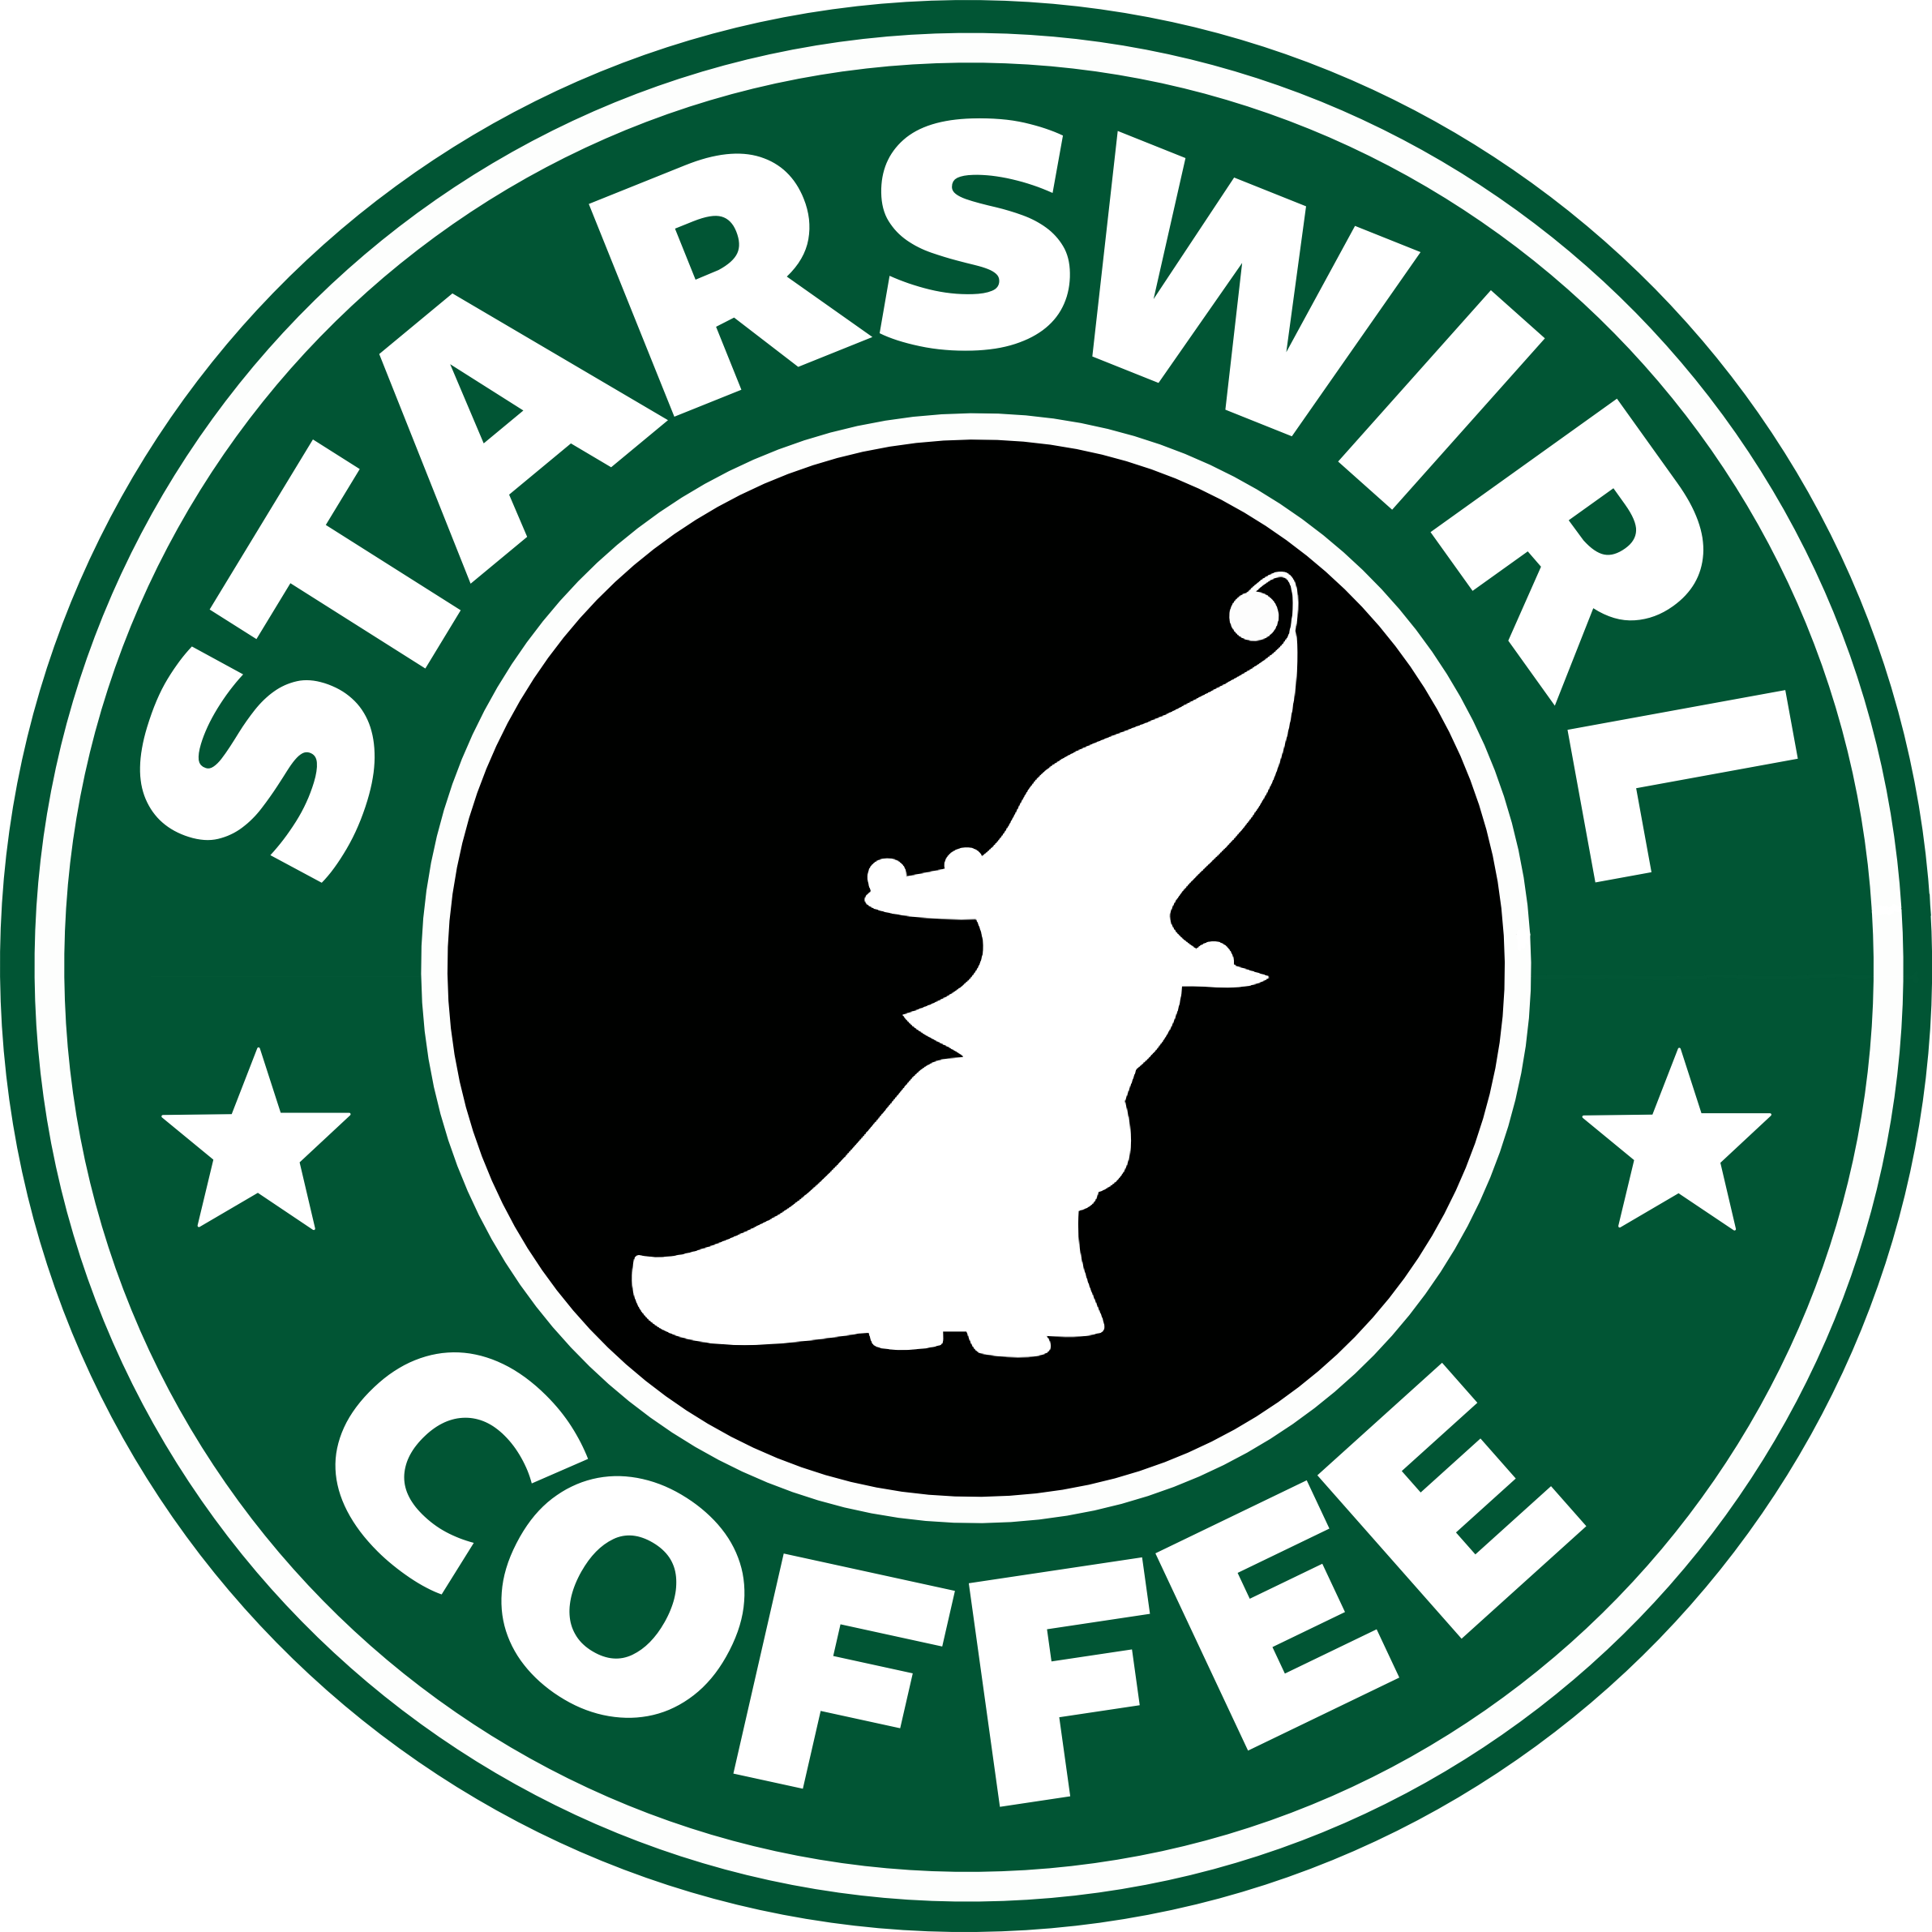 14 Starbucks Coffee Vector Images - Starbucks Logo ...